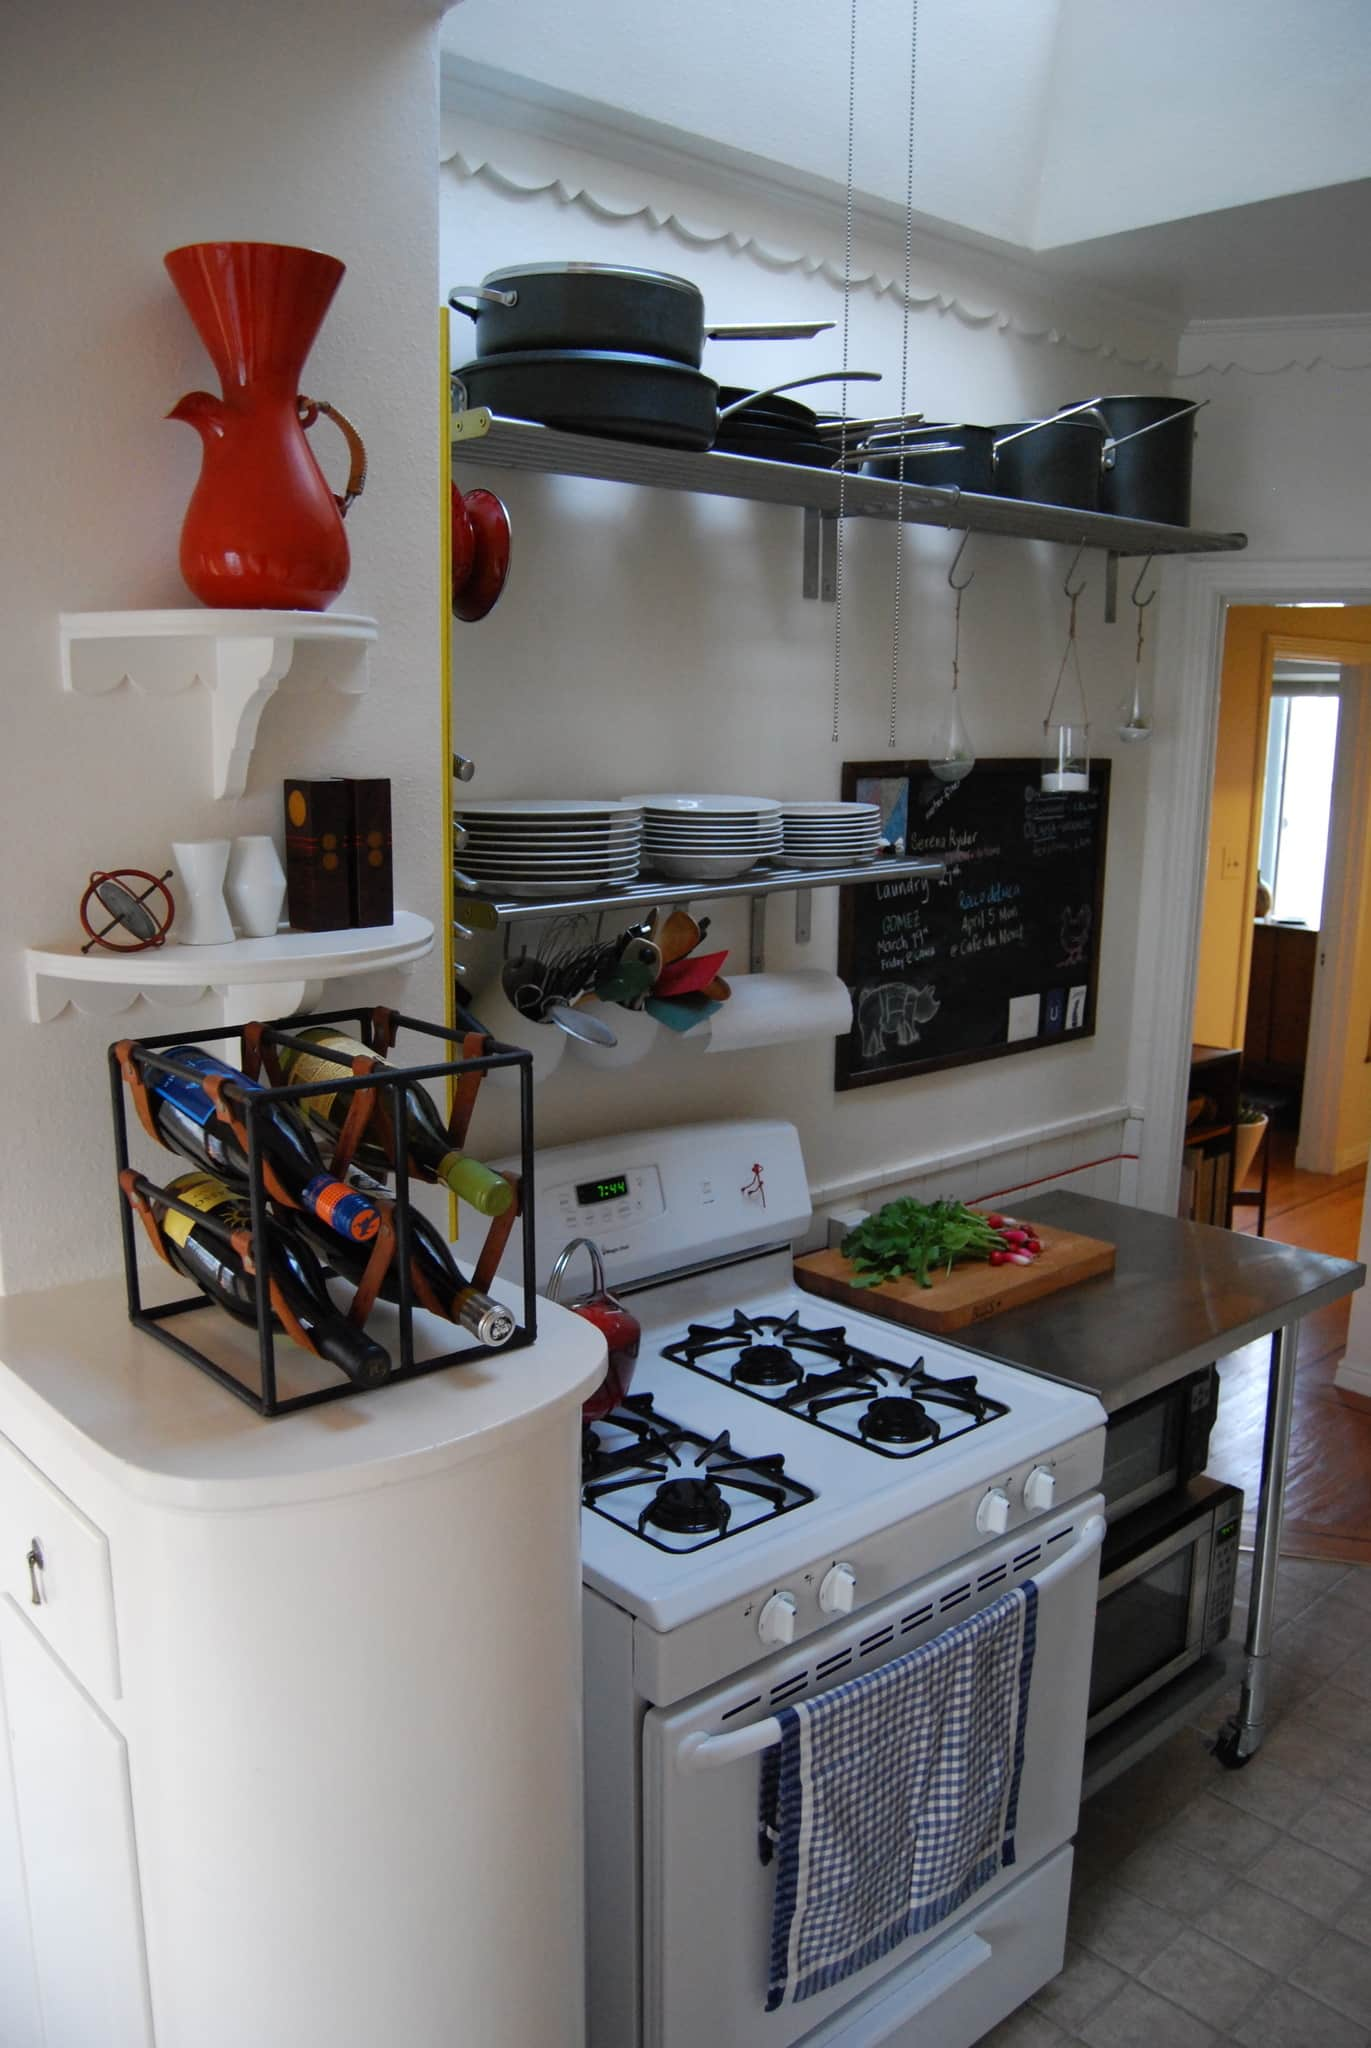 Nikki's San Francisco Kitchen with Character: gallery image 2